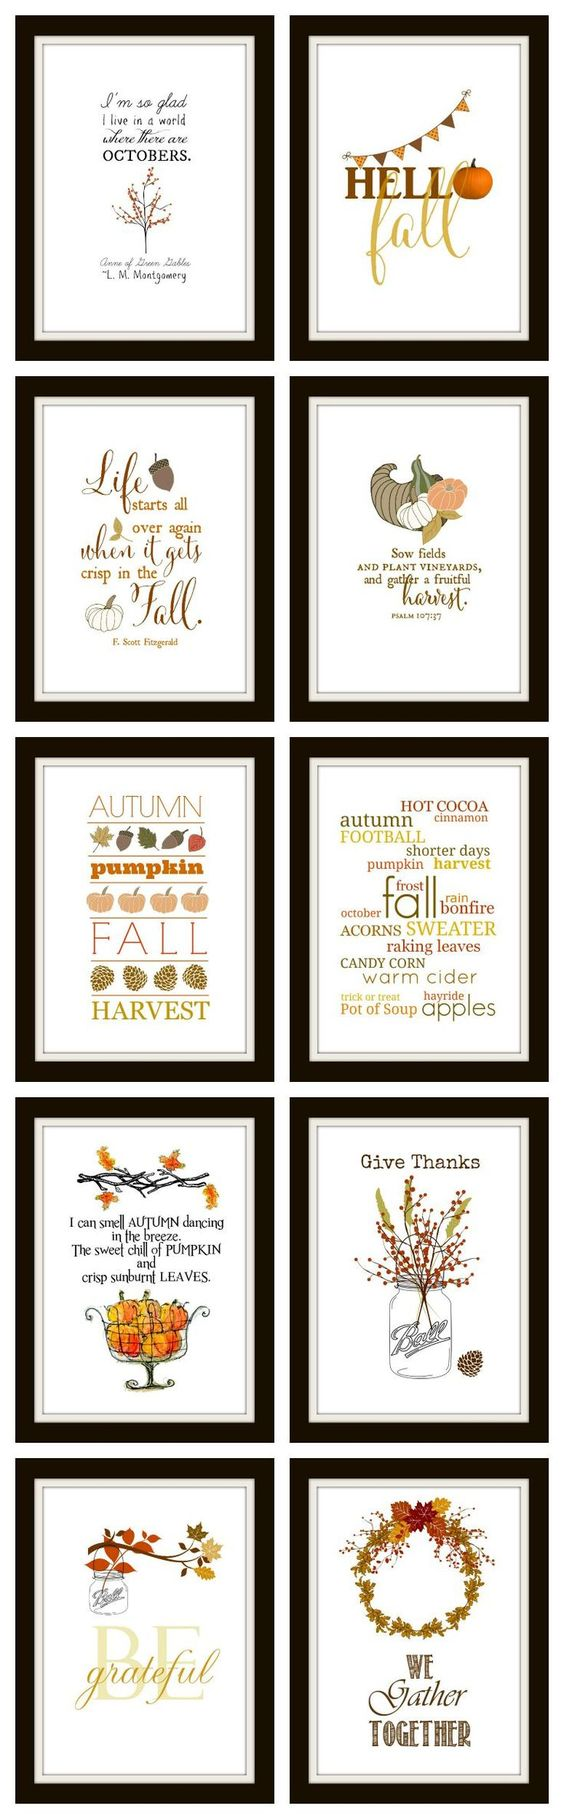 10 Free Fall Printables | Ready to frame for instant DIY wall art. They make great cards and screensavers too! All are original and all the easy links are right here.